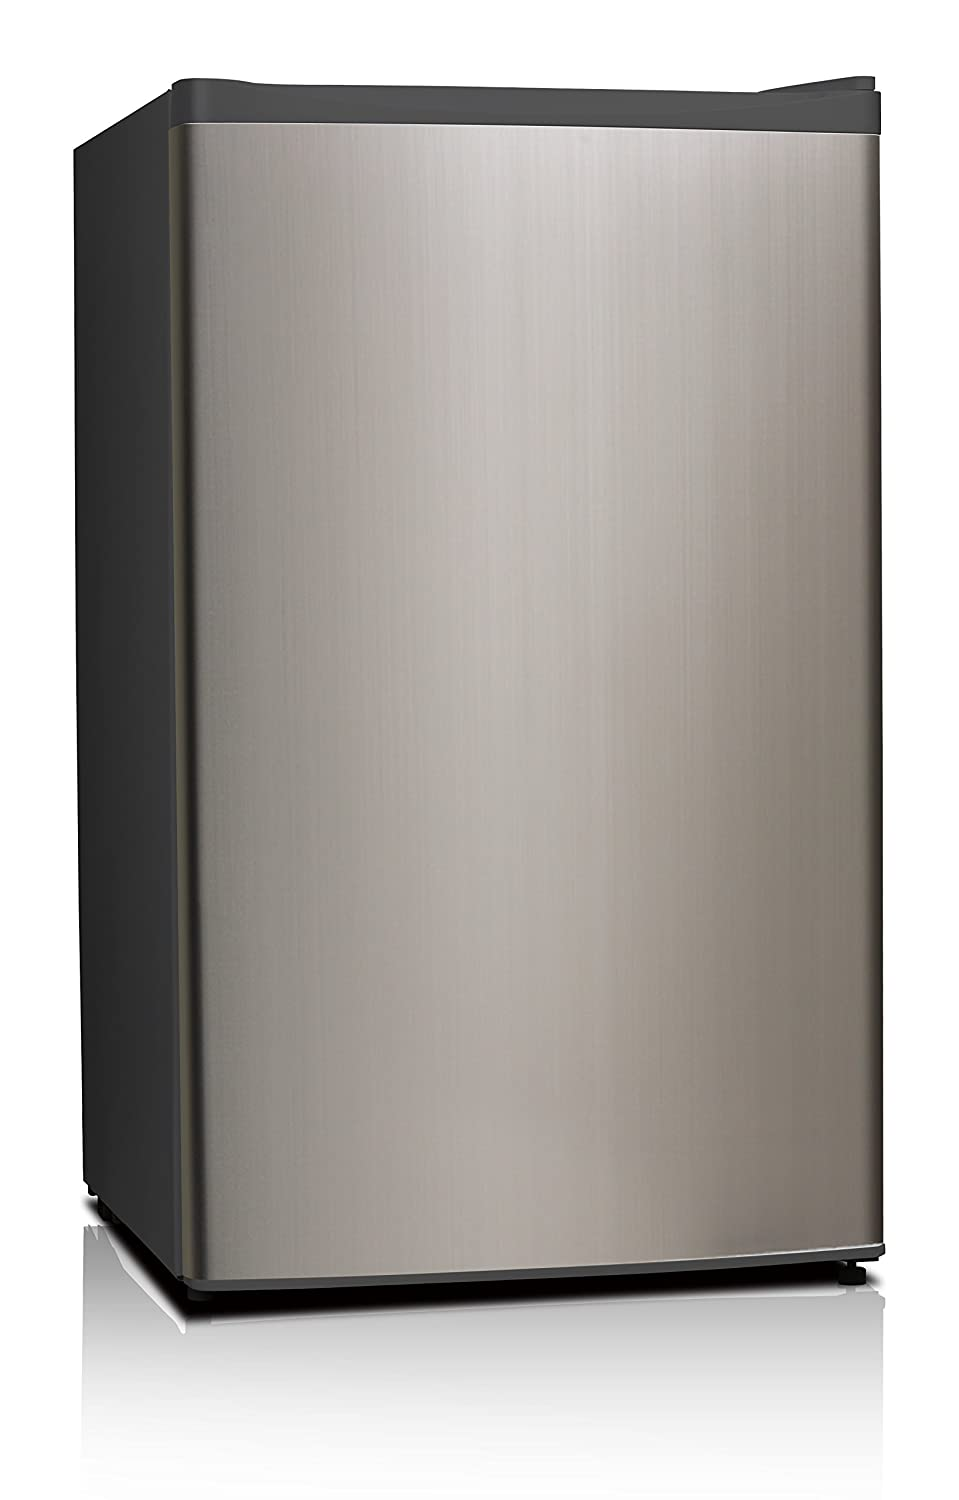 Midea WHS-121LSS1 Compact Single Reversible Door Refrigerator and Freezer, 3.3 Cubic Feet, Stainless Steel